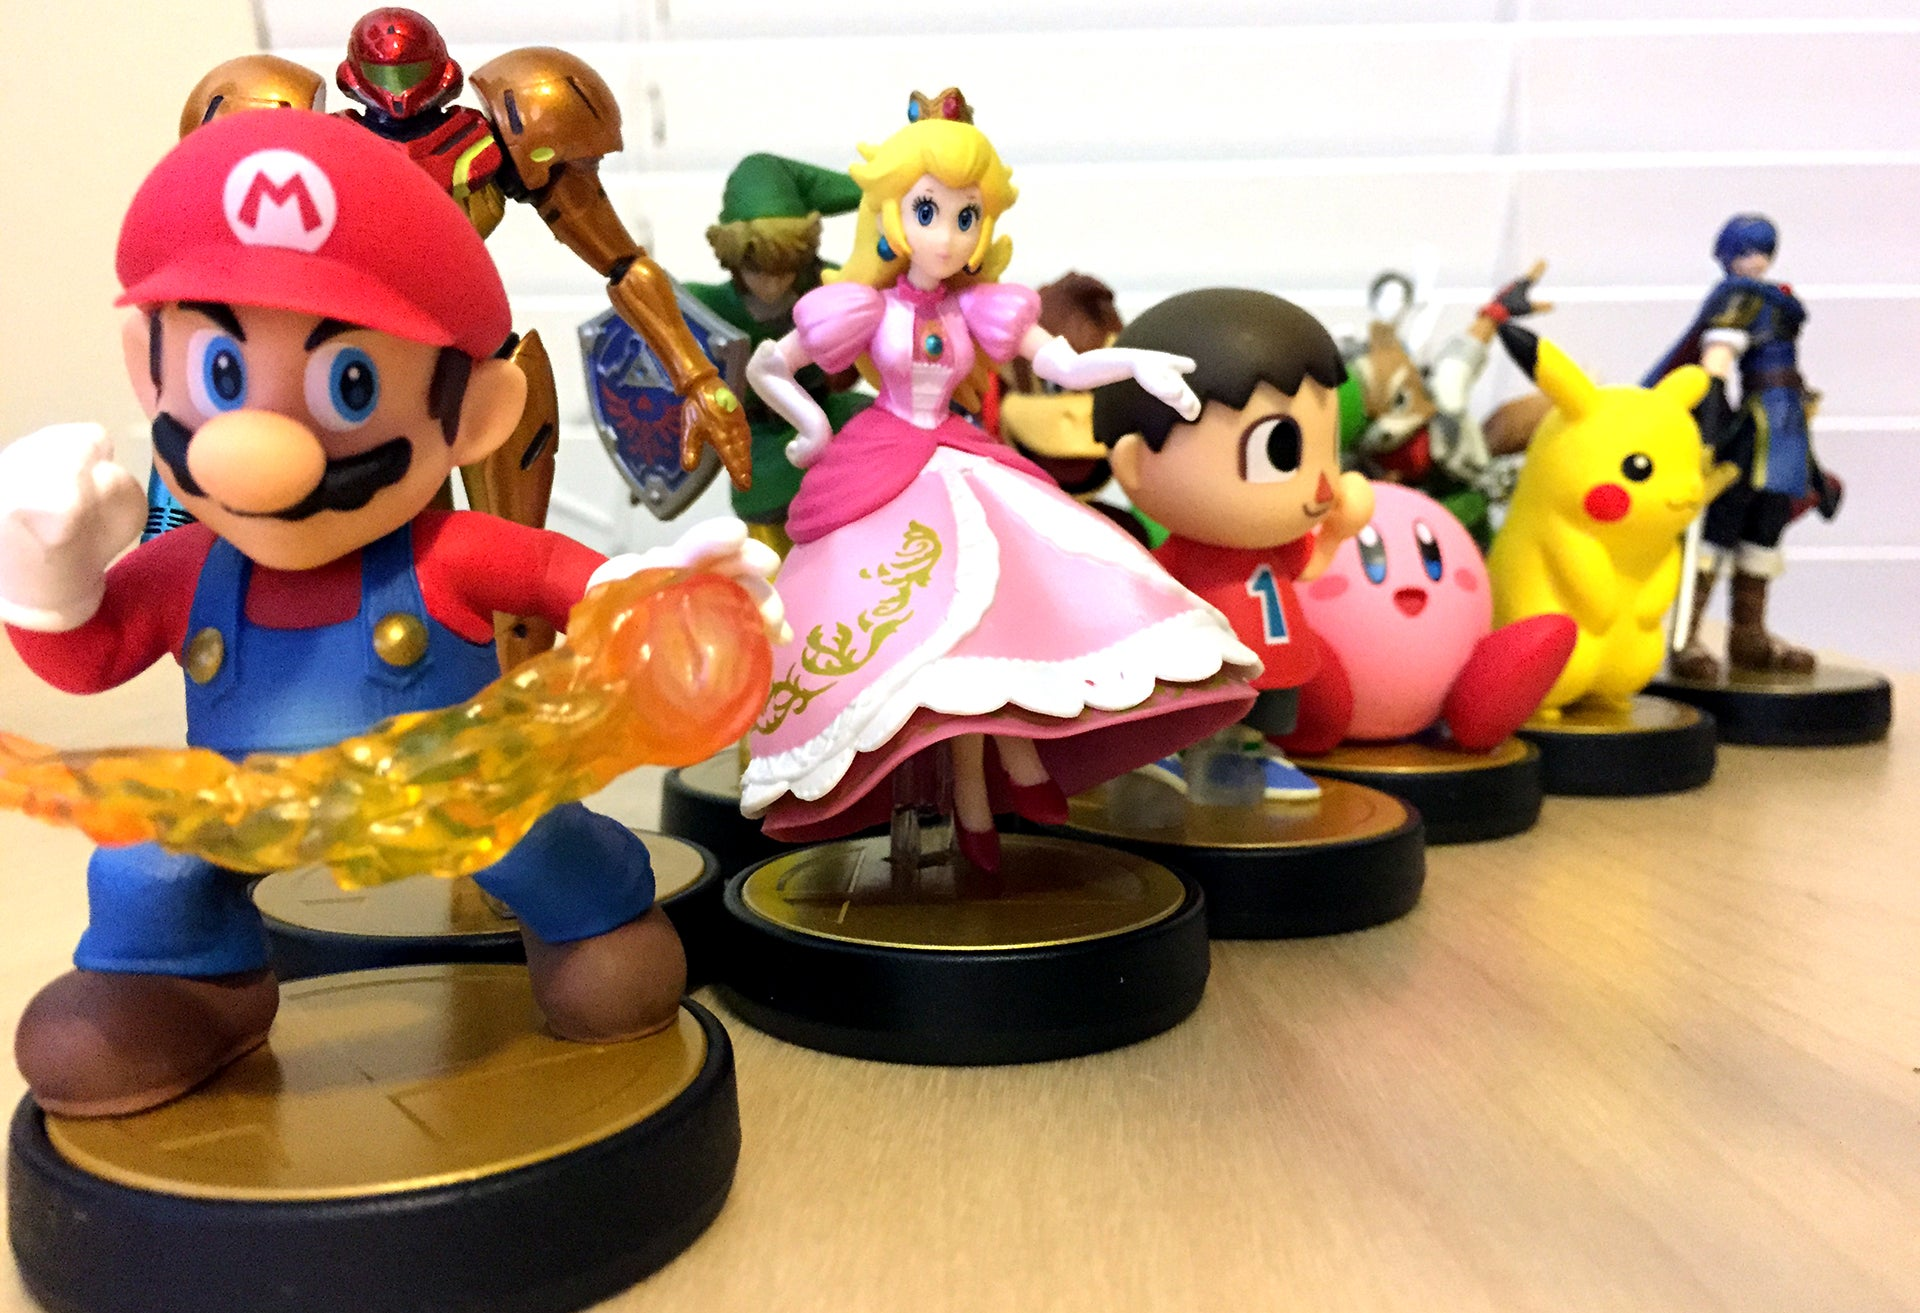 Up Close And Personal With Nintendo's Amiibo Figures